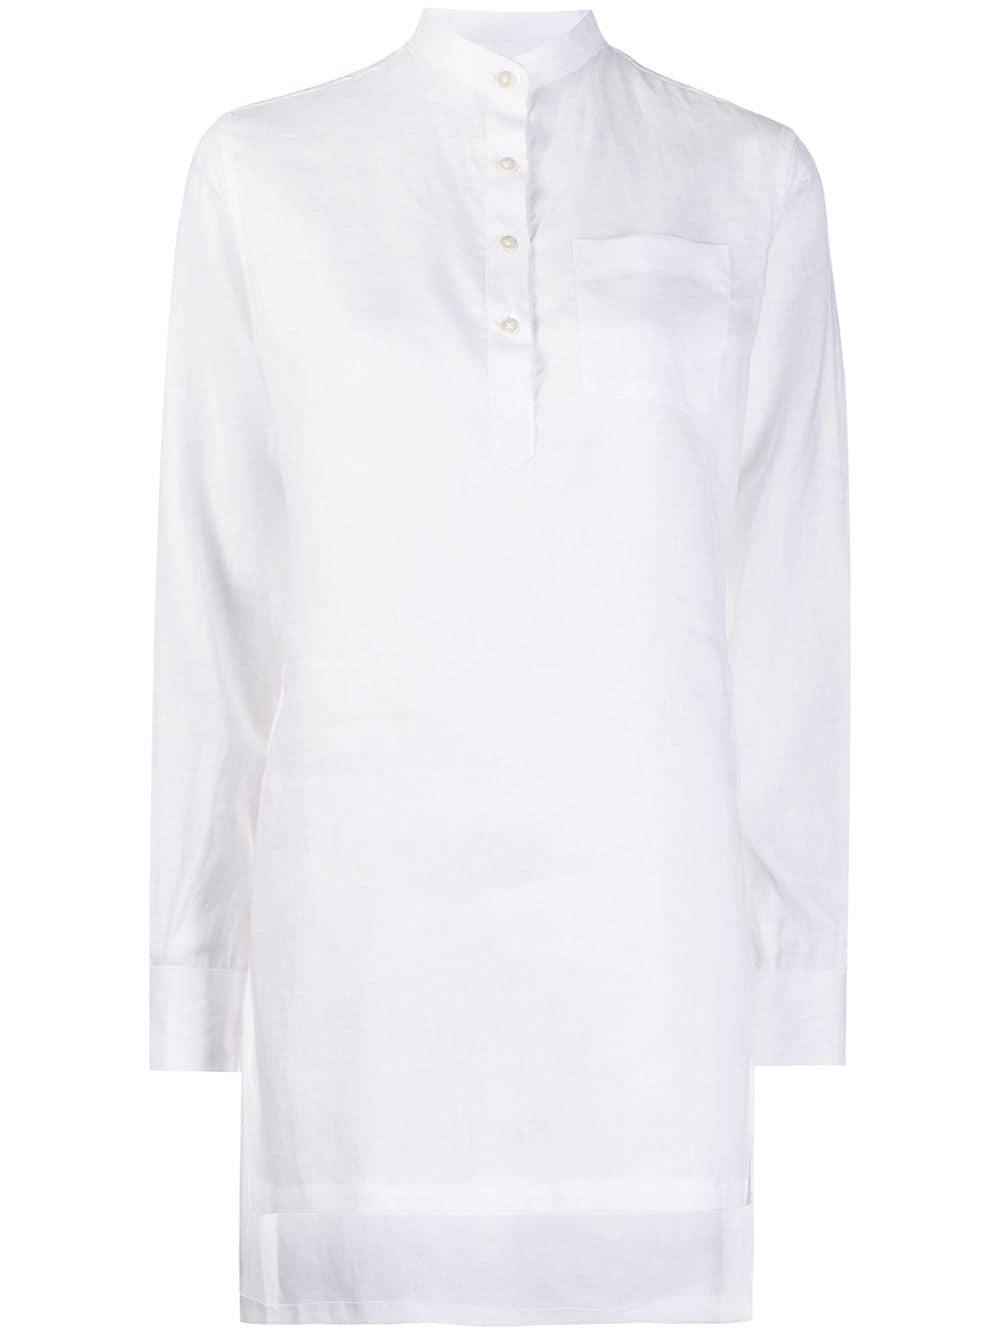 Eleventy chest-pocket blouse - White von Eleventy